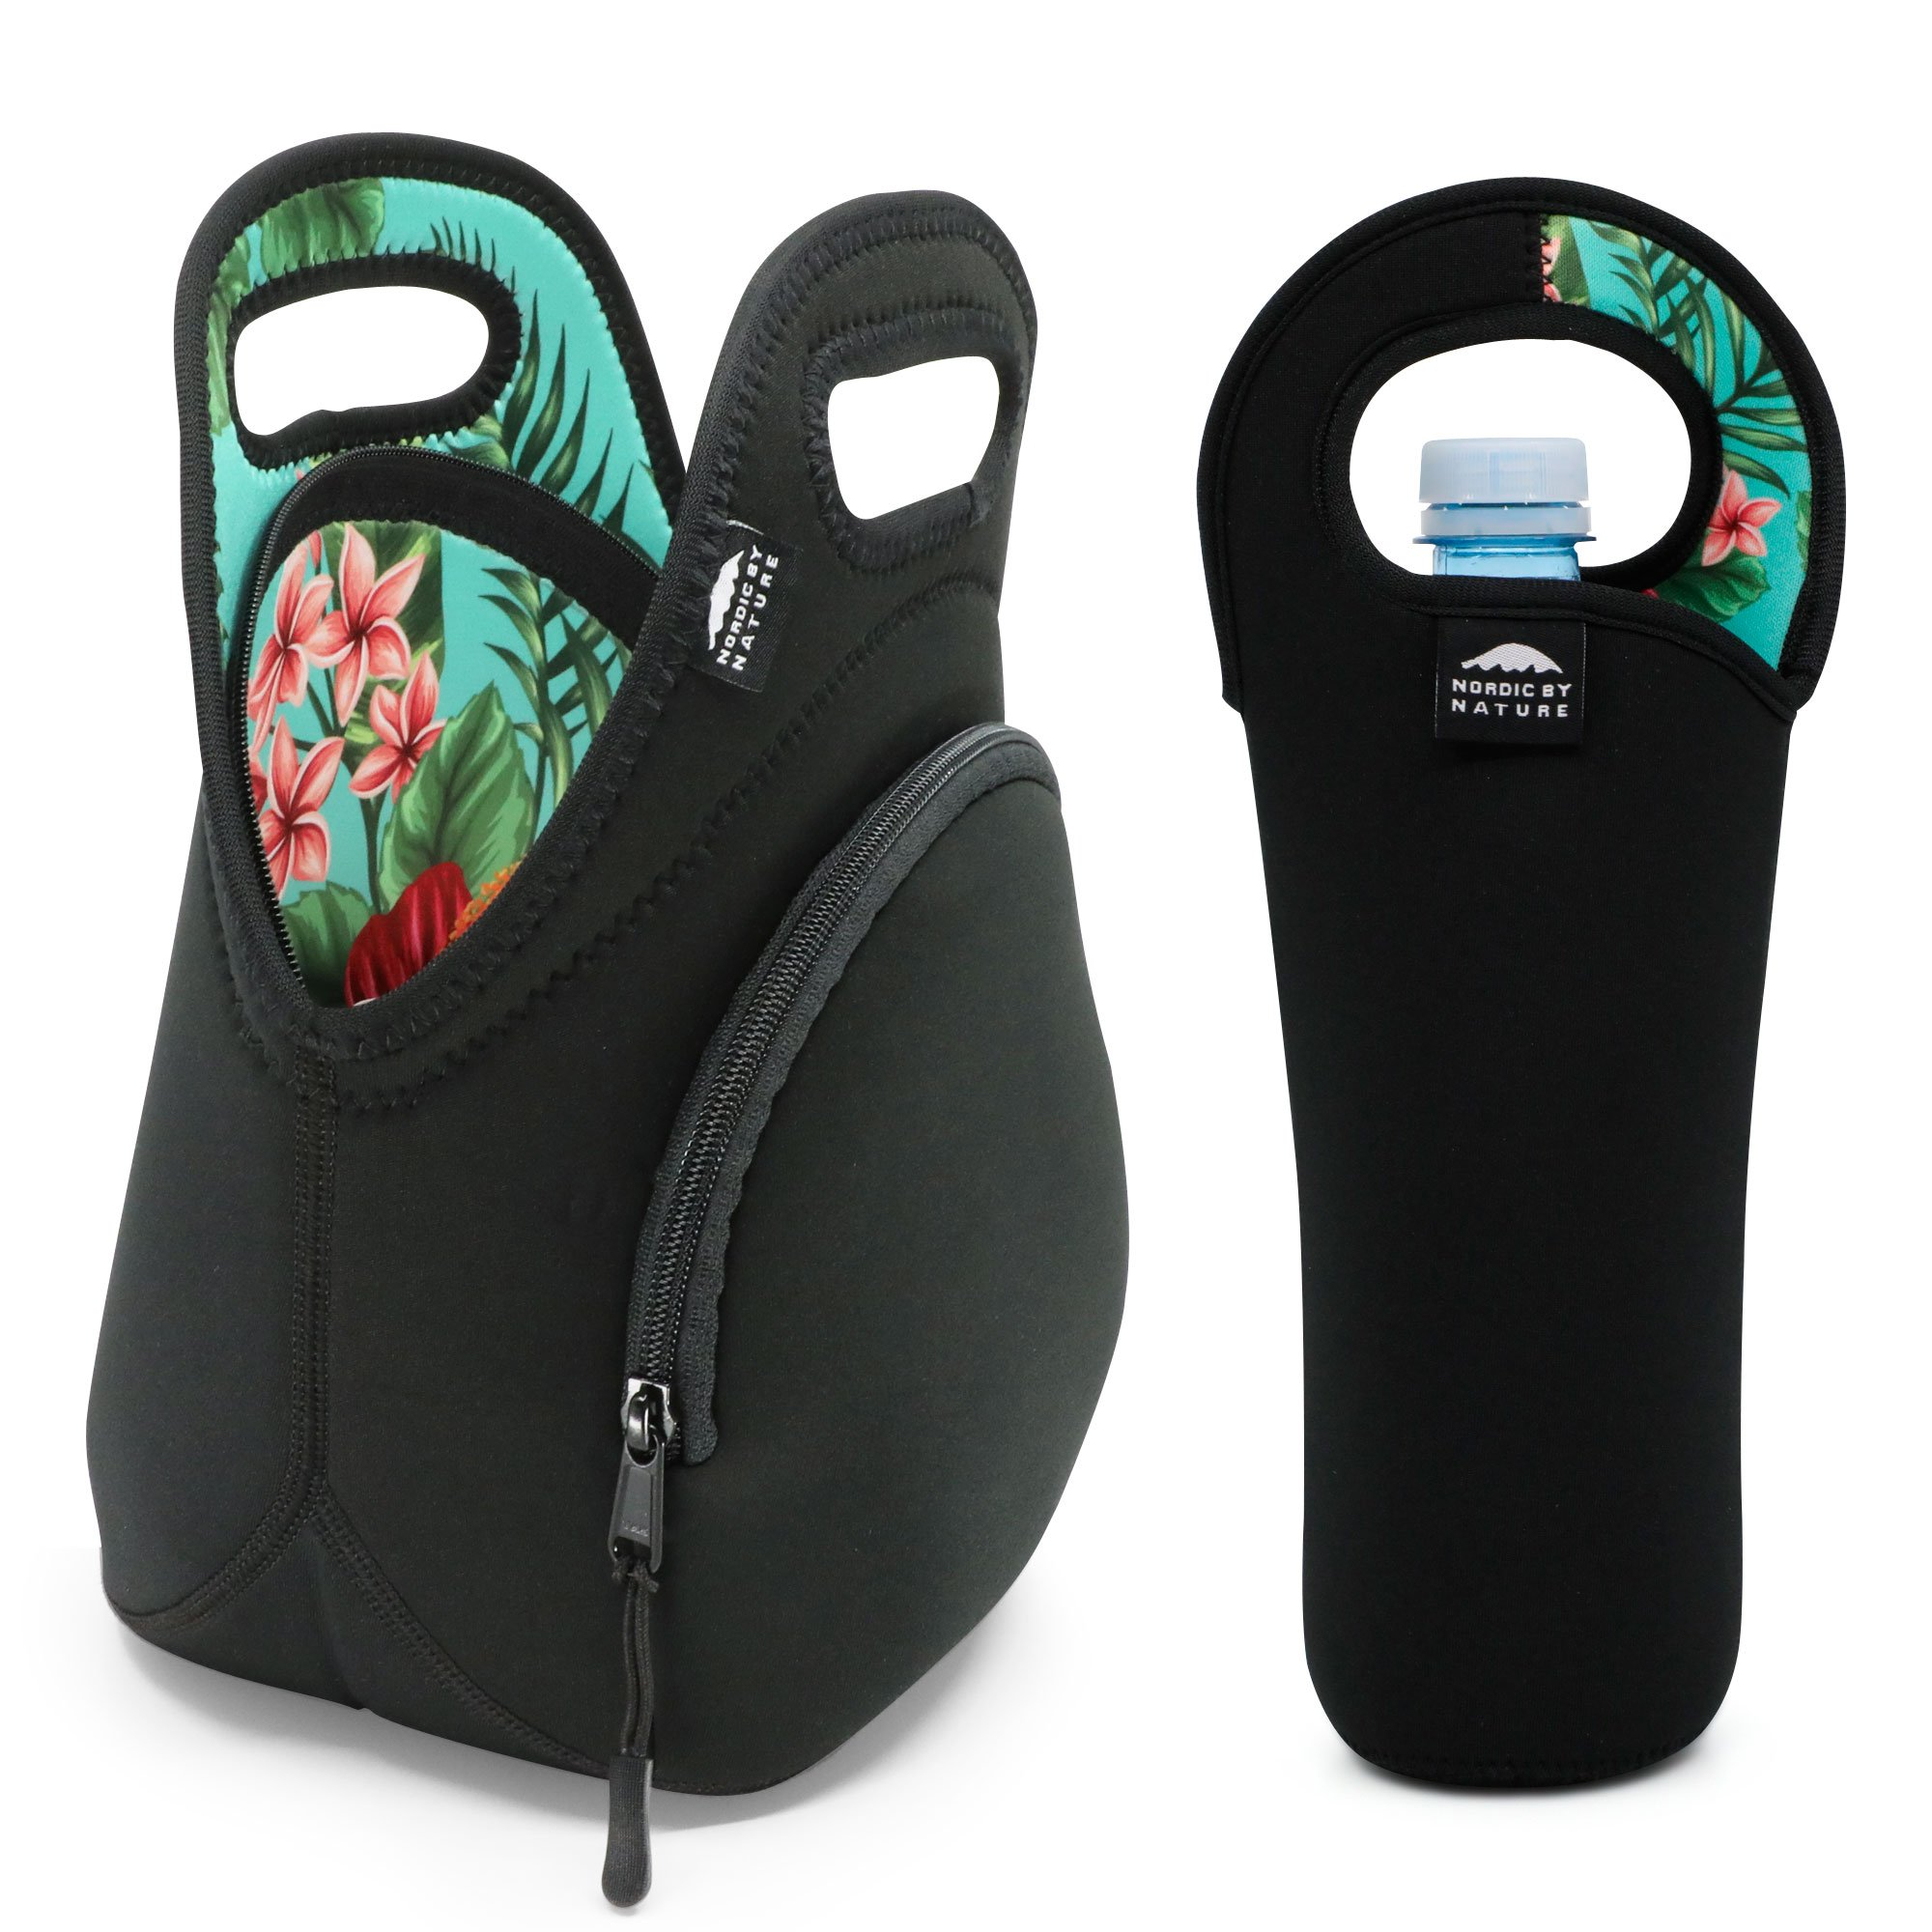 Neoprene Lunch Bags For Women, Men & Kids (Green Flower) | Extra Thick 5mm Insulation Keeps Your Lunch Box Bag Delicious For Hours | Washable | Bottle Sleeve | Extra Pocket | YKK zippers